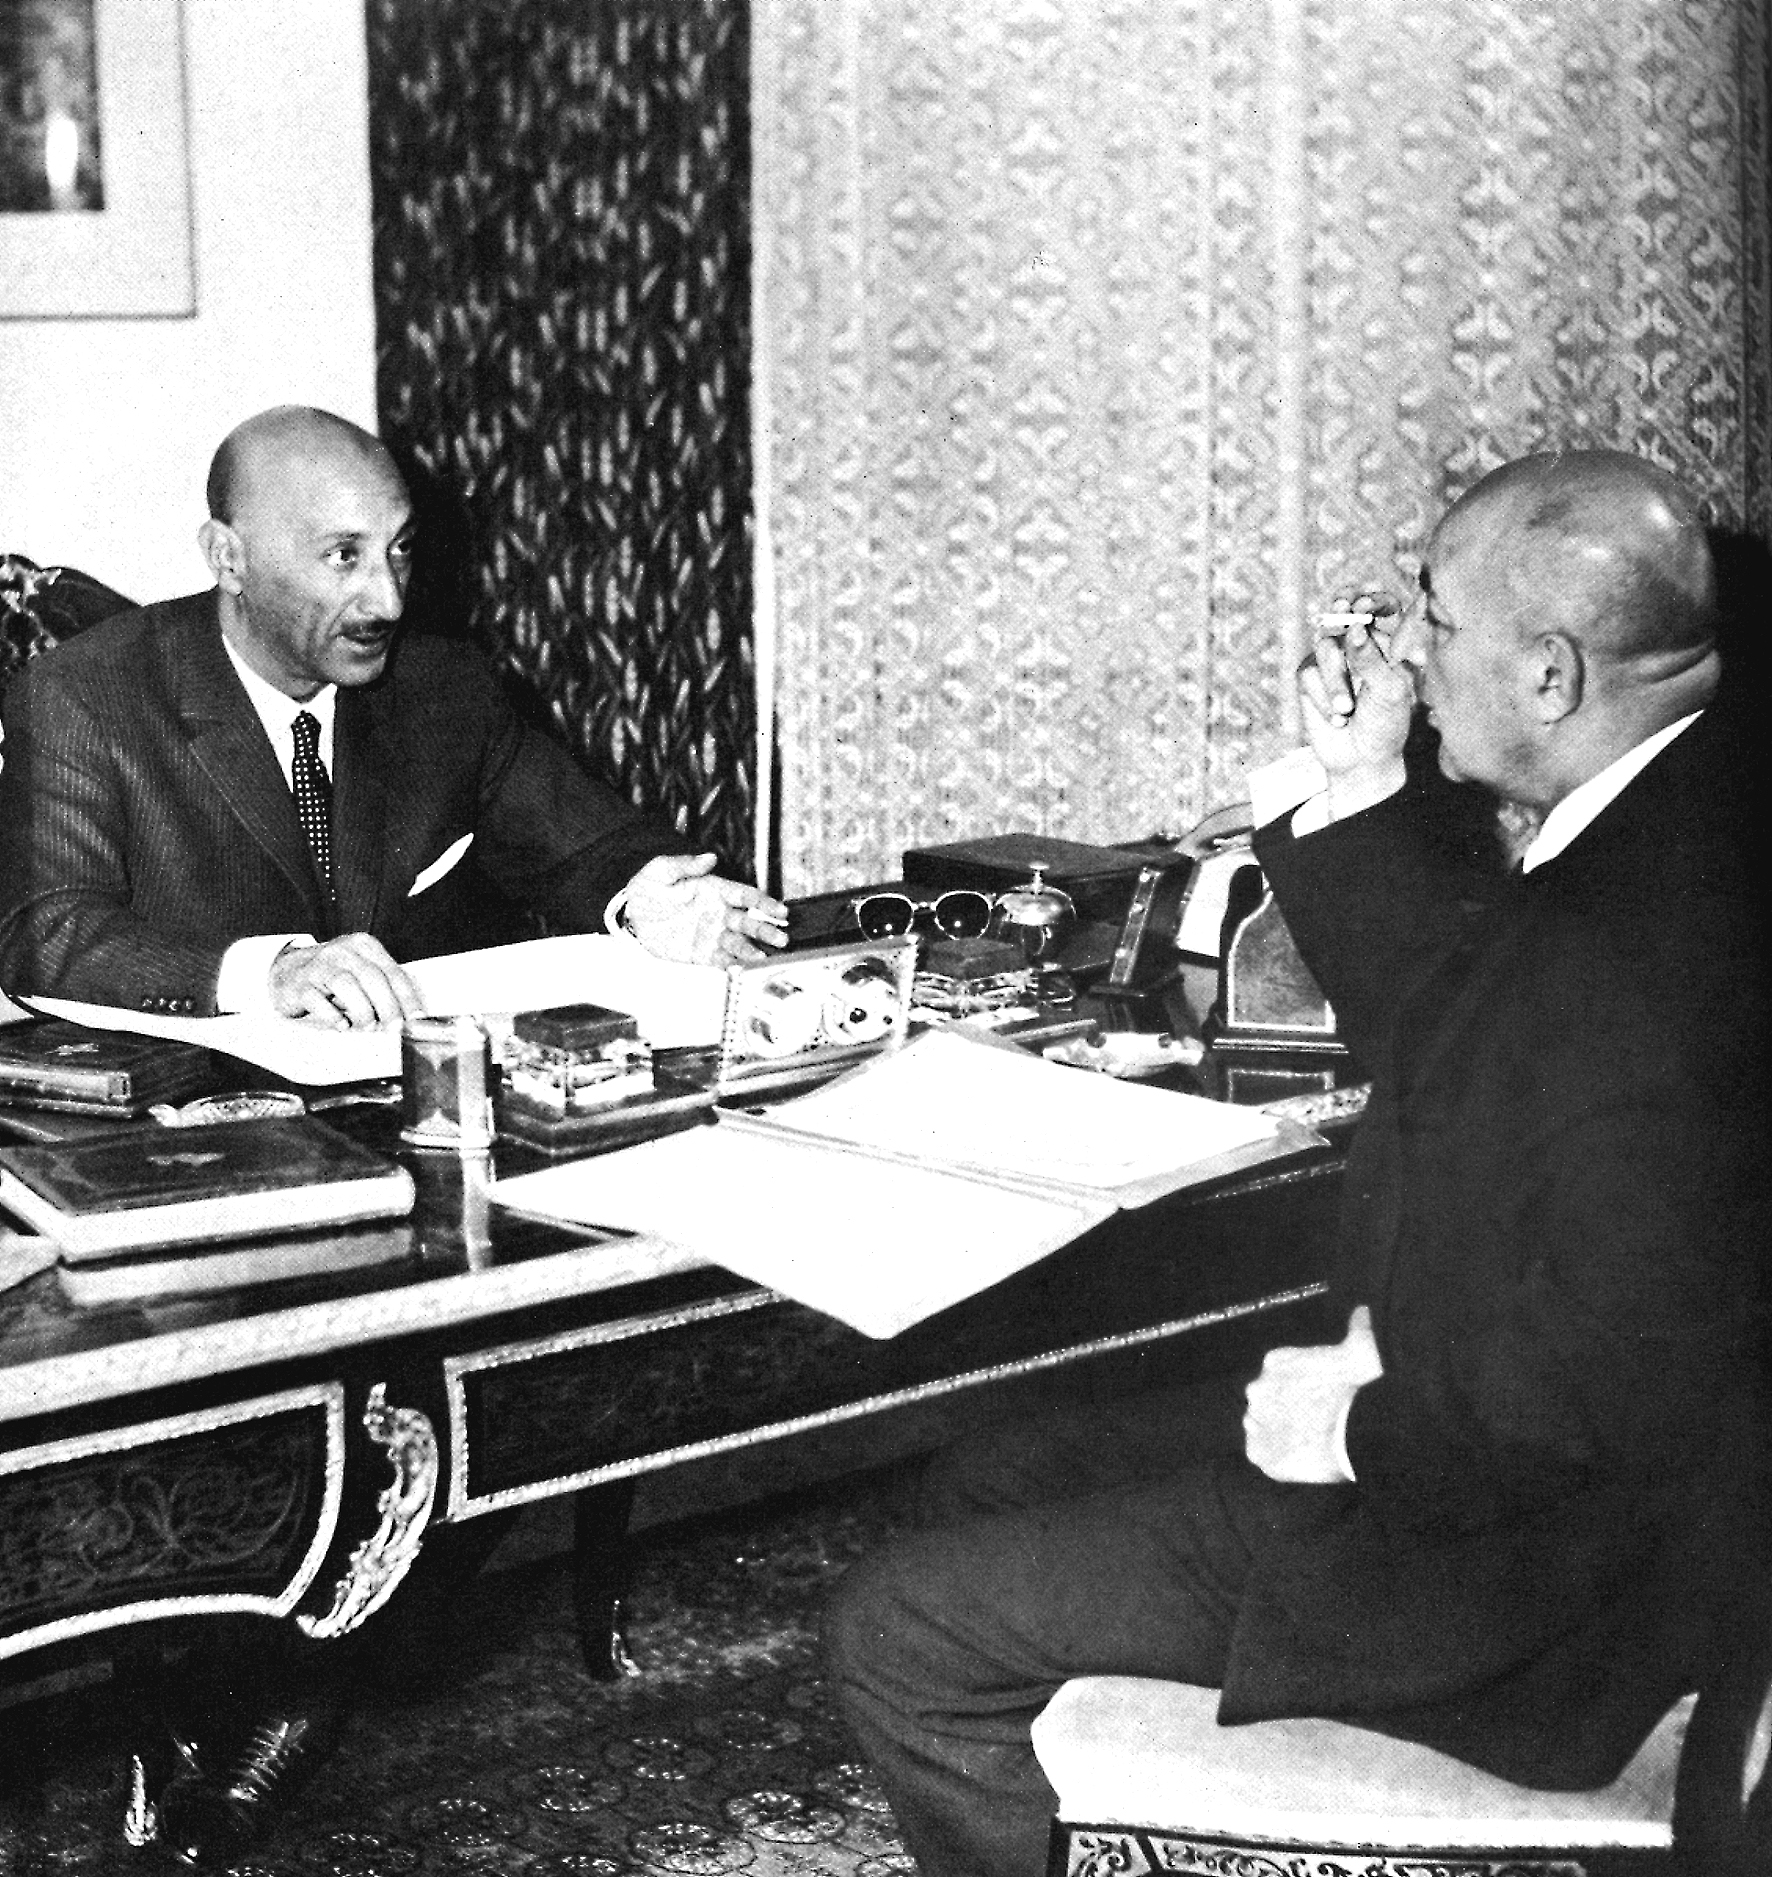 King Zahir Shah (left) discusses affairs of state with his prime minister, cousin, and son-in-law, Prince Daoud. The photo is from the late 1950s, before Daoud was dismissed in 1963. In 1973 Daoud seized power and proclaimed himself president while the king was on holiday in Rome.. Photo: the Moesgaard Museums archives